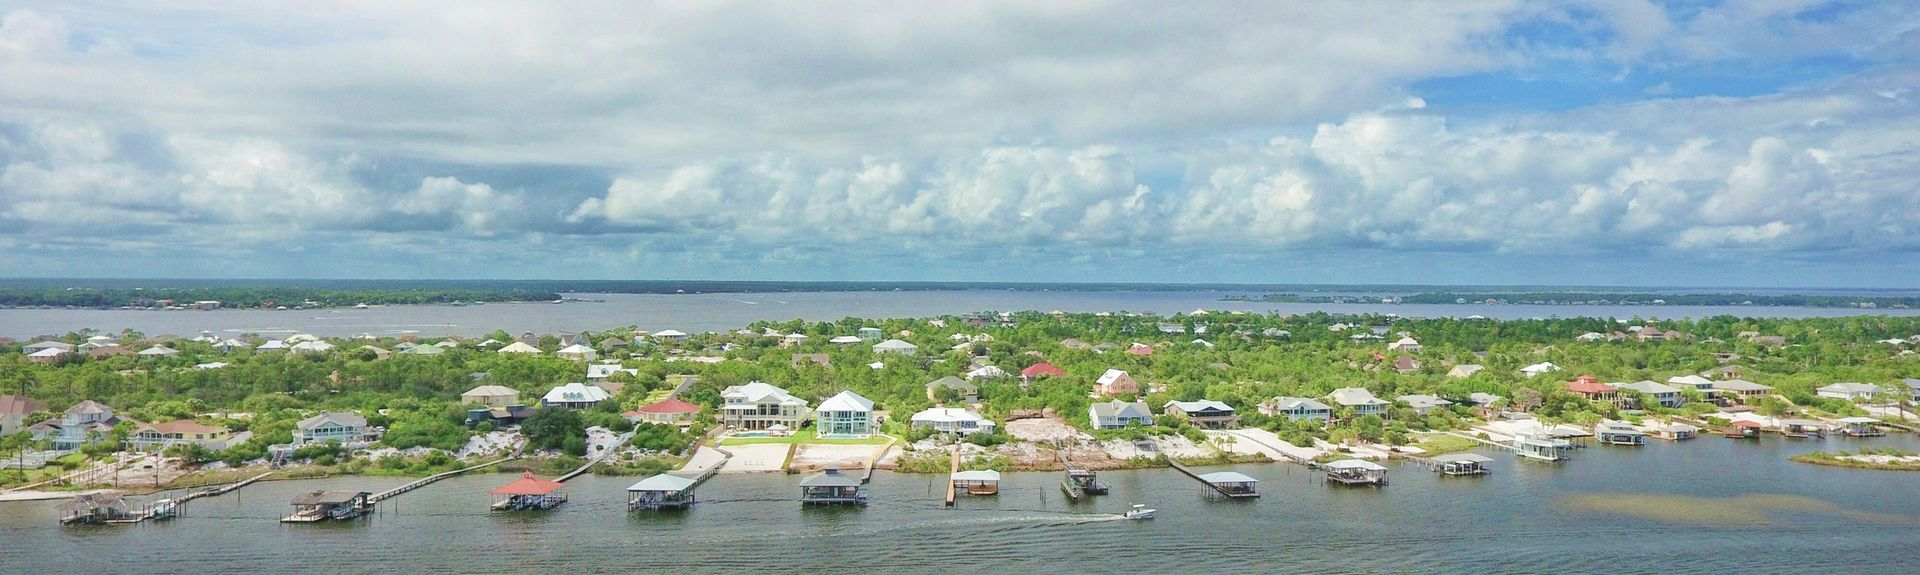 Ono Island, Orange Beach, Alabama, États-Unis d'Amérique